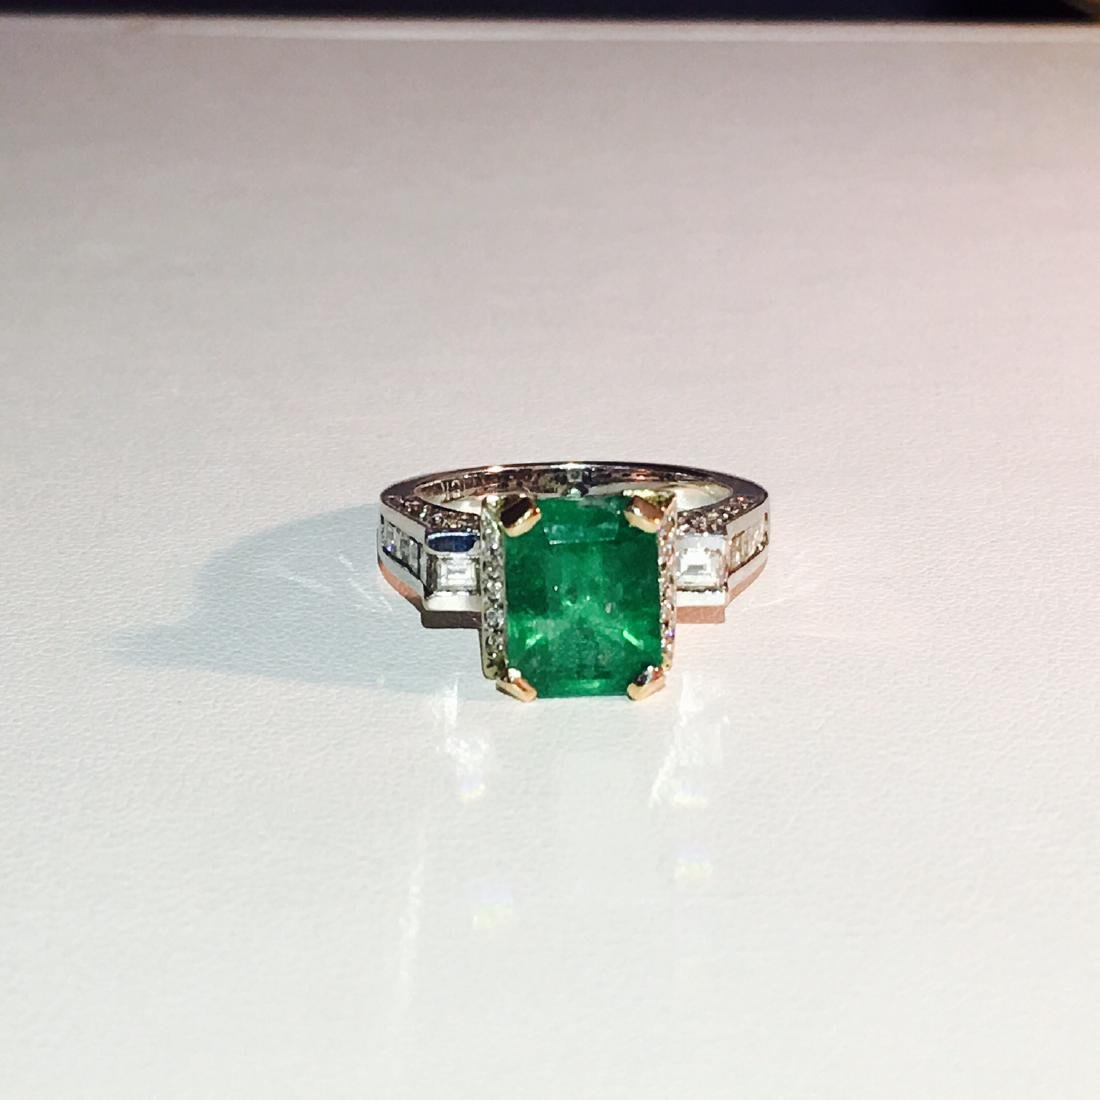 18k White Gold High Quality Diamond And Emerald Ring